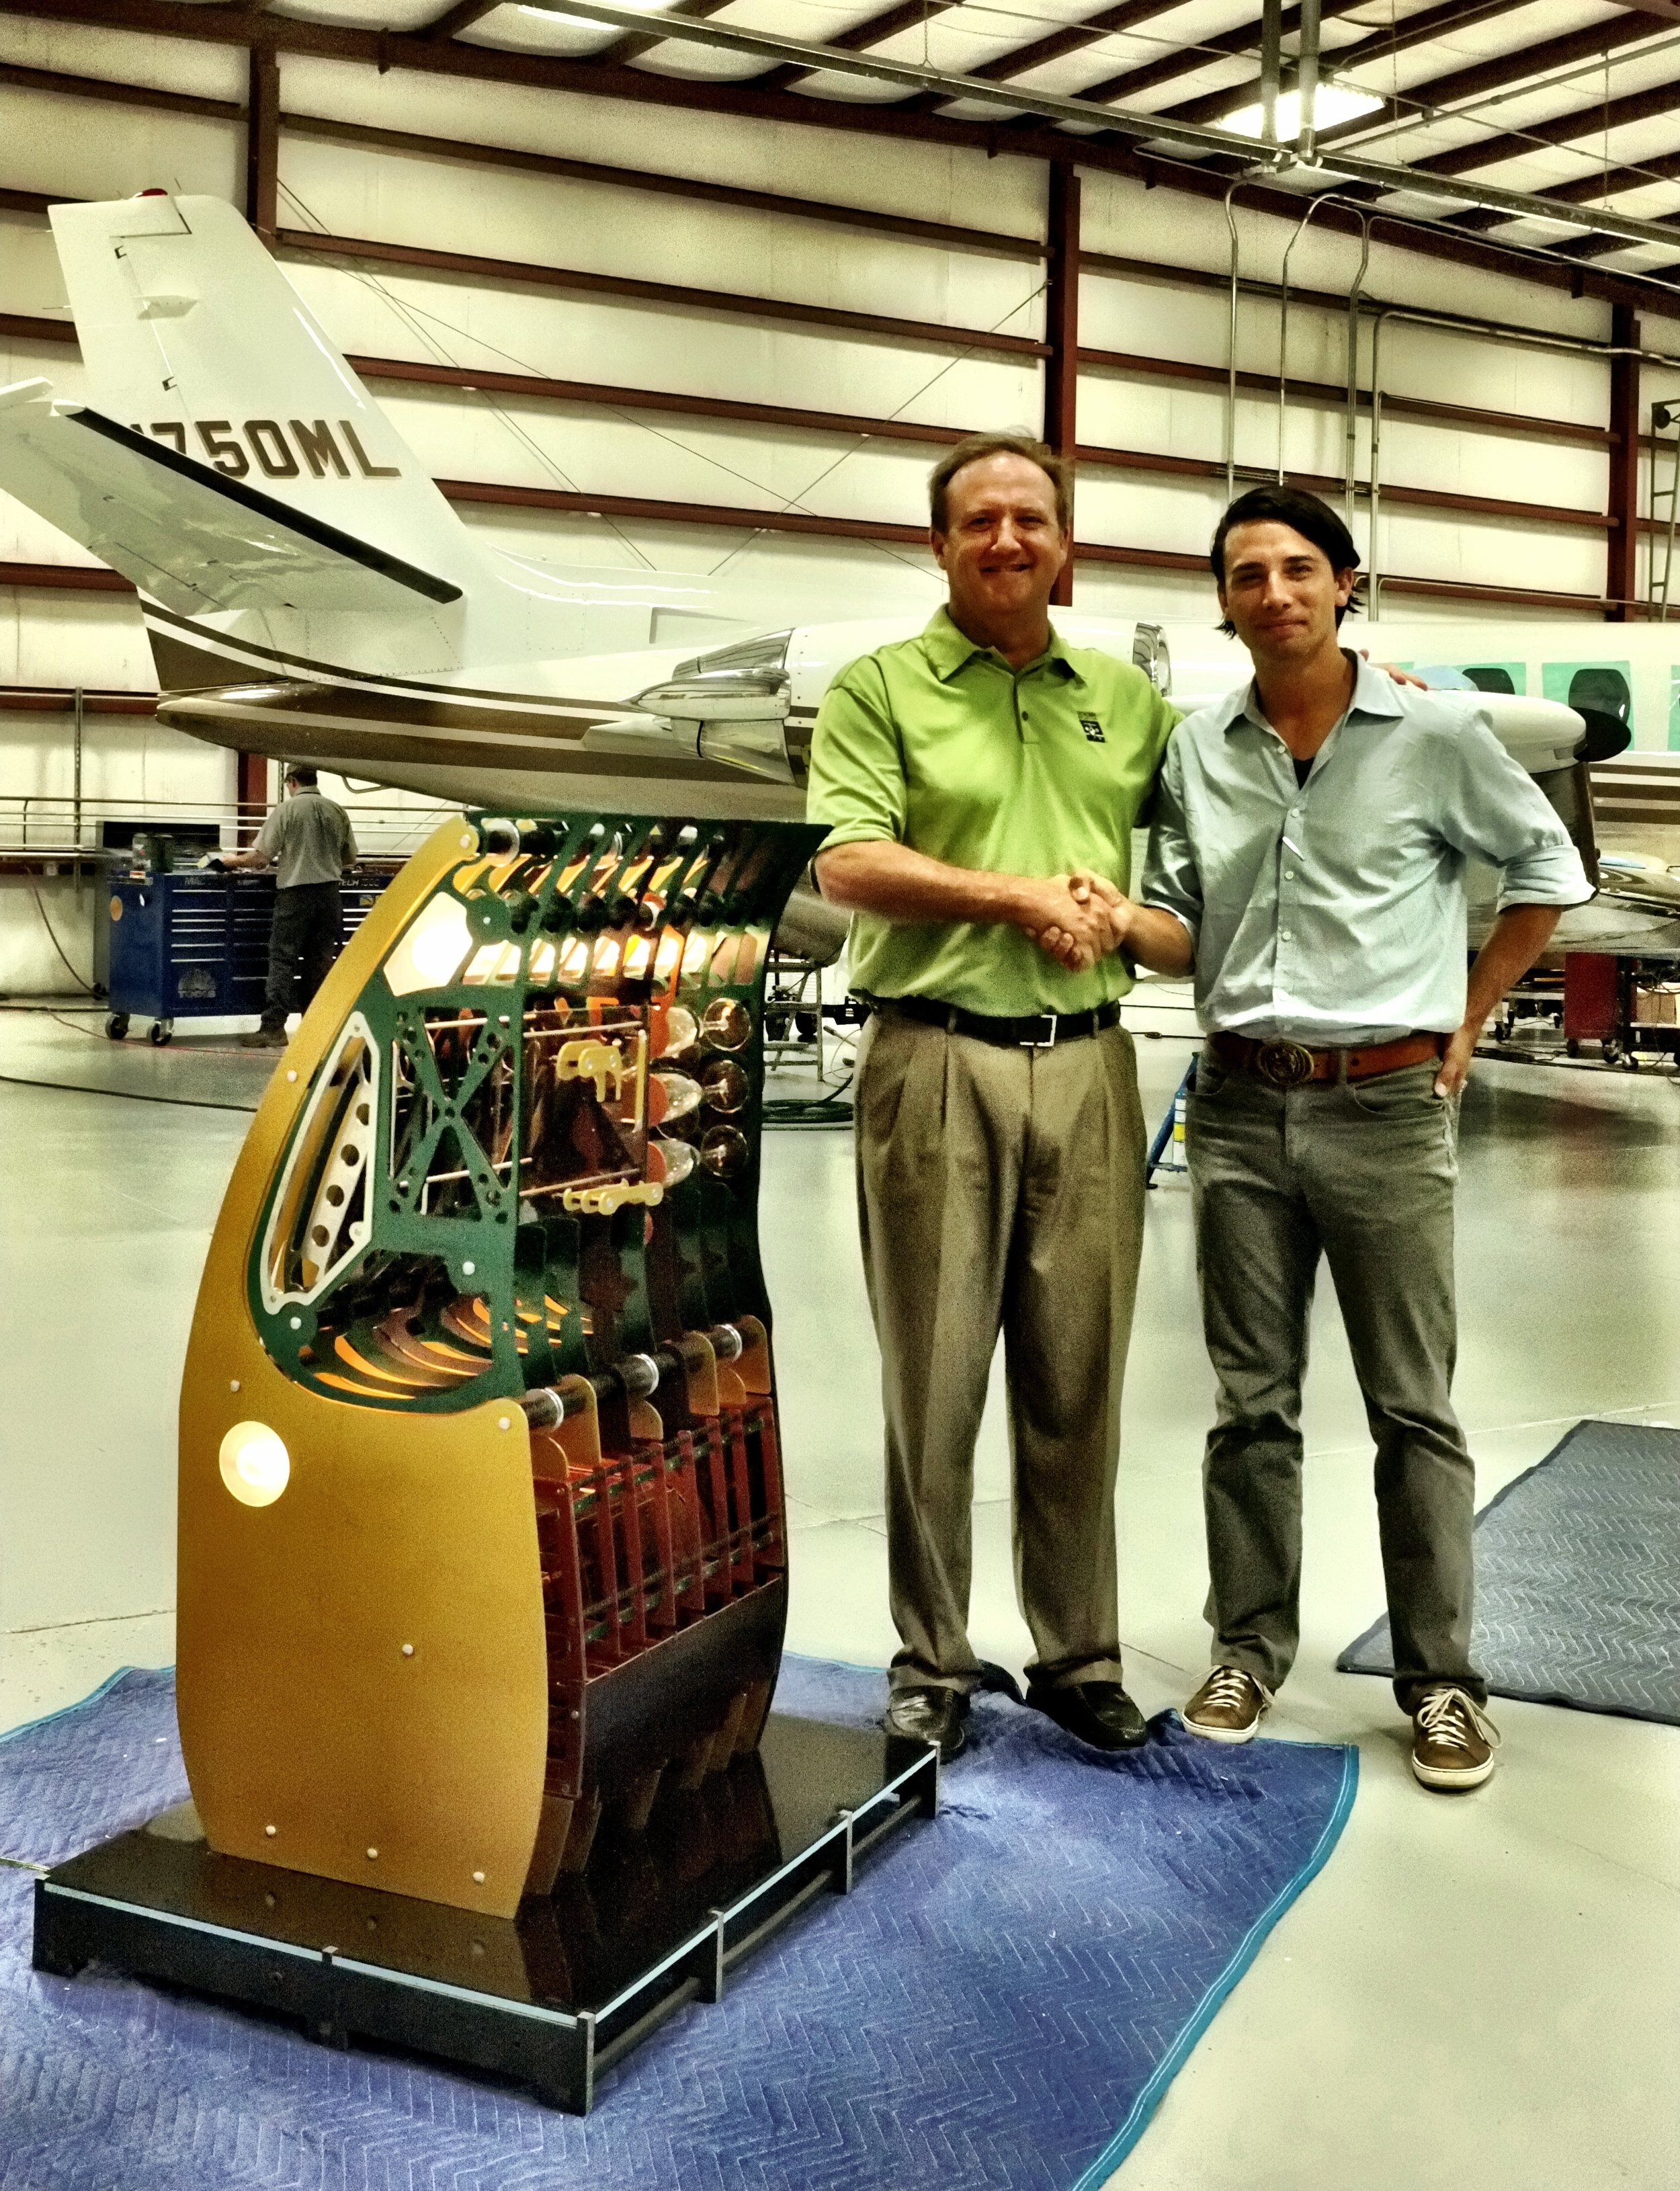 - A few months later Duncan Aviation had put together a business plan. They moved me and my family to Lincoln Nebraska so I can work side-by-side with the engineers in producing a prototype that could past the stringent 18G forward load case. After a few months we had designed the A2 prototype. Designed to fit in a phenom 300. In finite element, It passed the 18G forward load case, had within it all of the modular benefits but, we made it look just like the spec galley in the presently in jet. Although it looked the same on the outside, ours can be taken out of the aircraft in less than an hour by only two technicians. It had the same usable space, the same weight but could be taken apart and reassembled an infinite number of times without any loss in structural integrity.